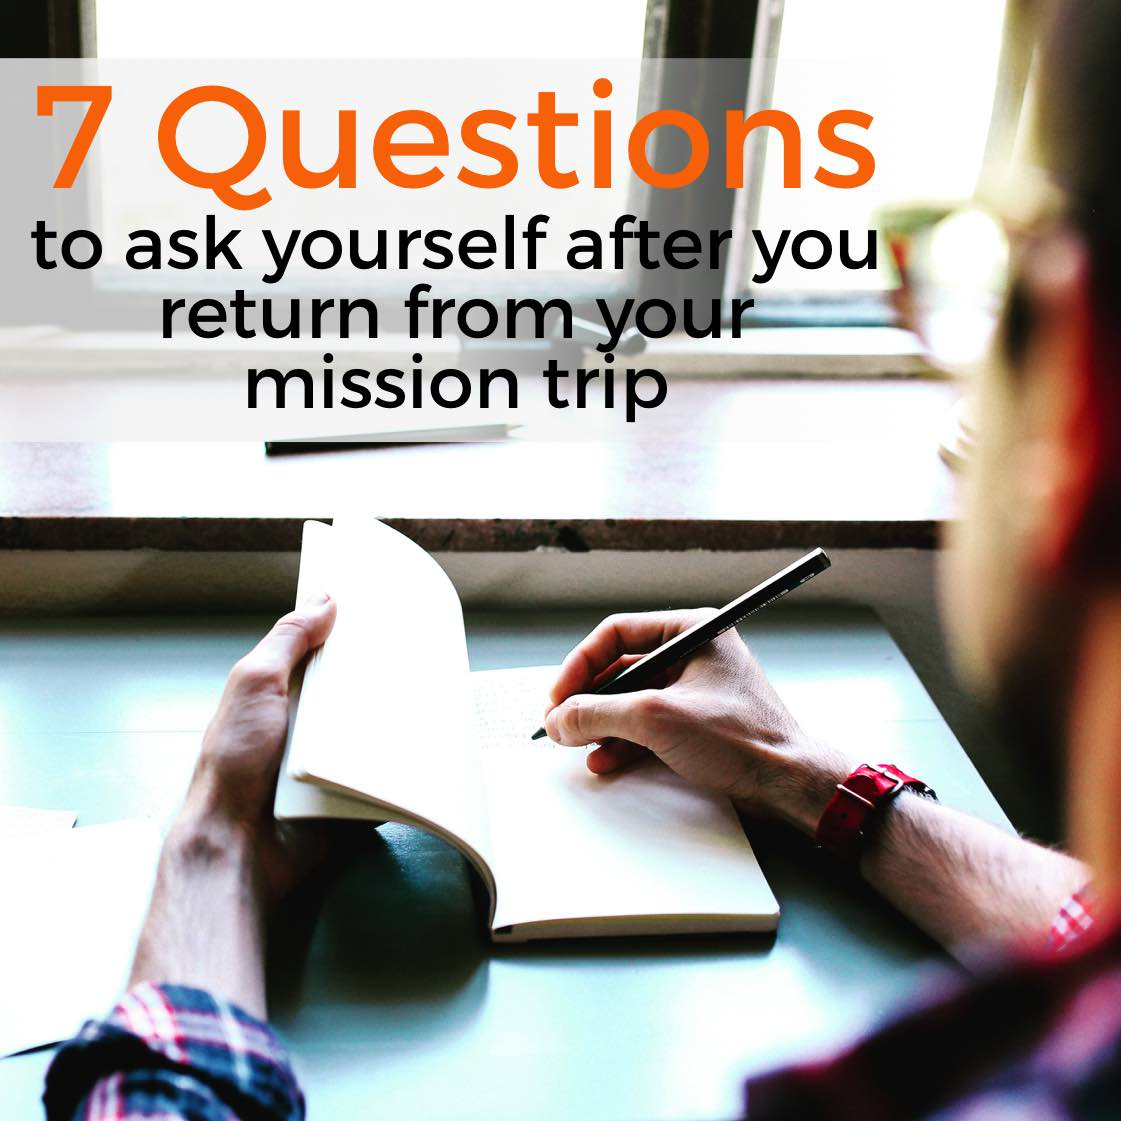 7 Questions to ask yourself after you return from your mission trip